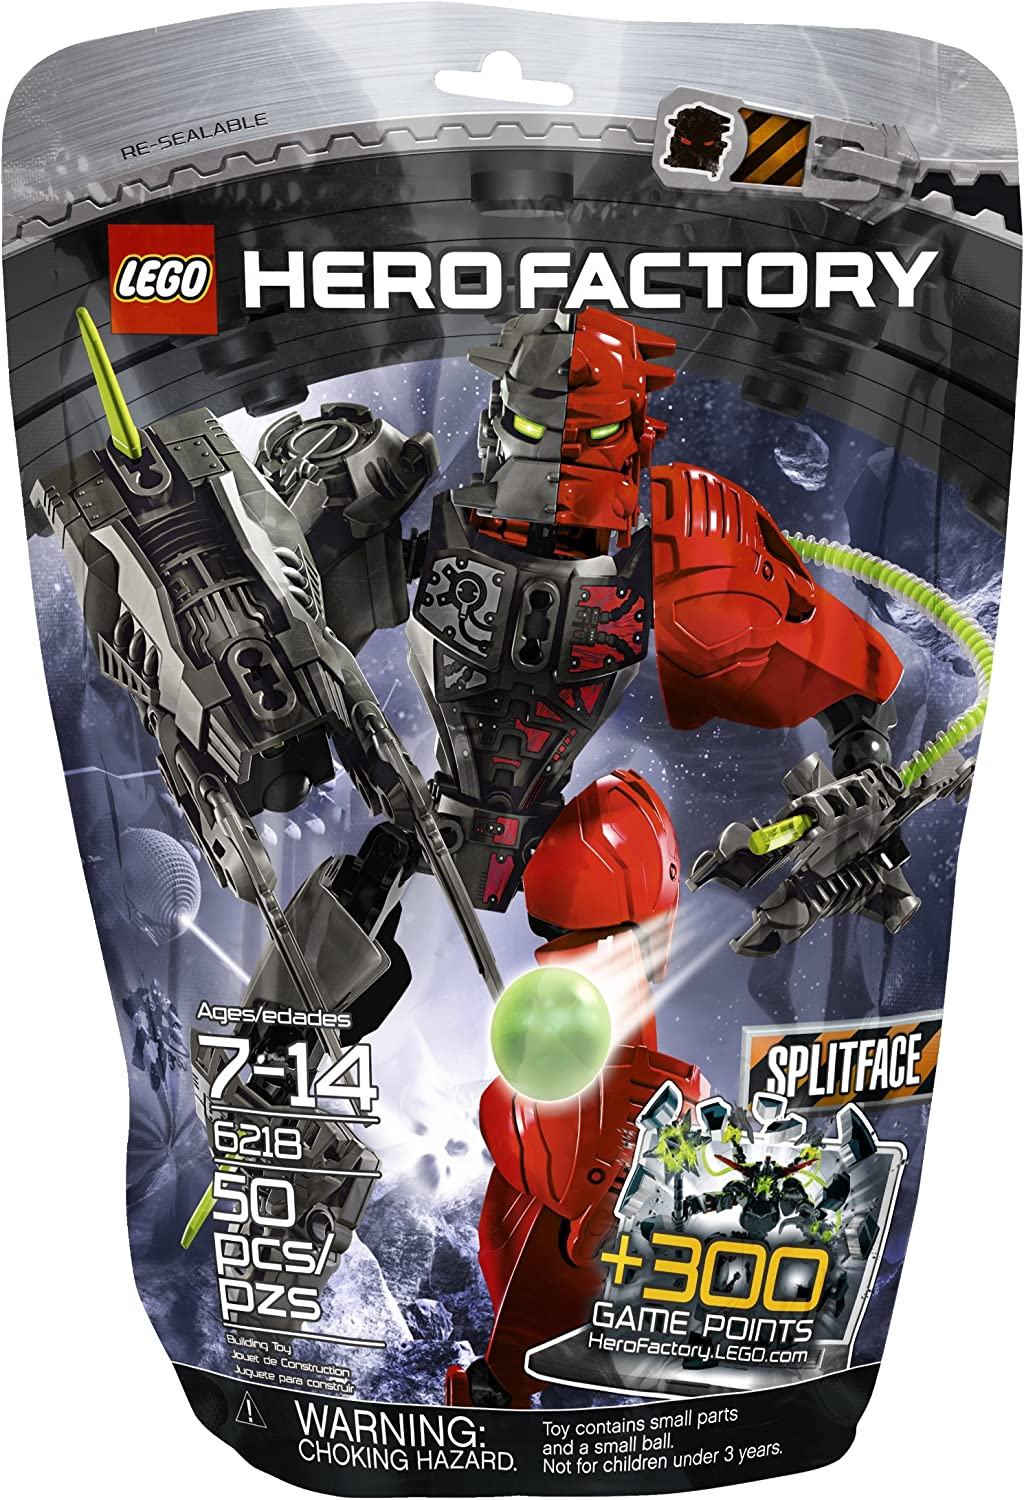 LEGO Hero Factory Splitface 6218